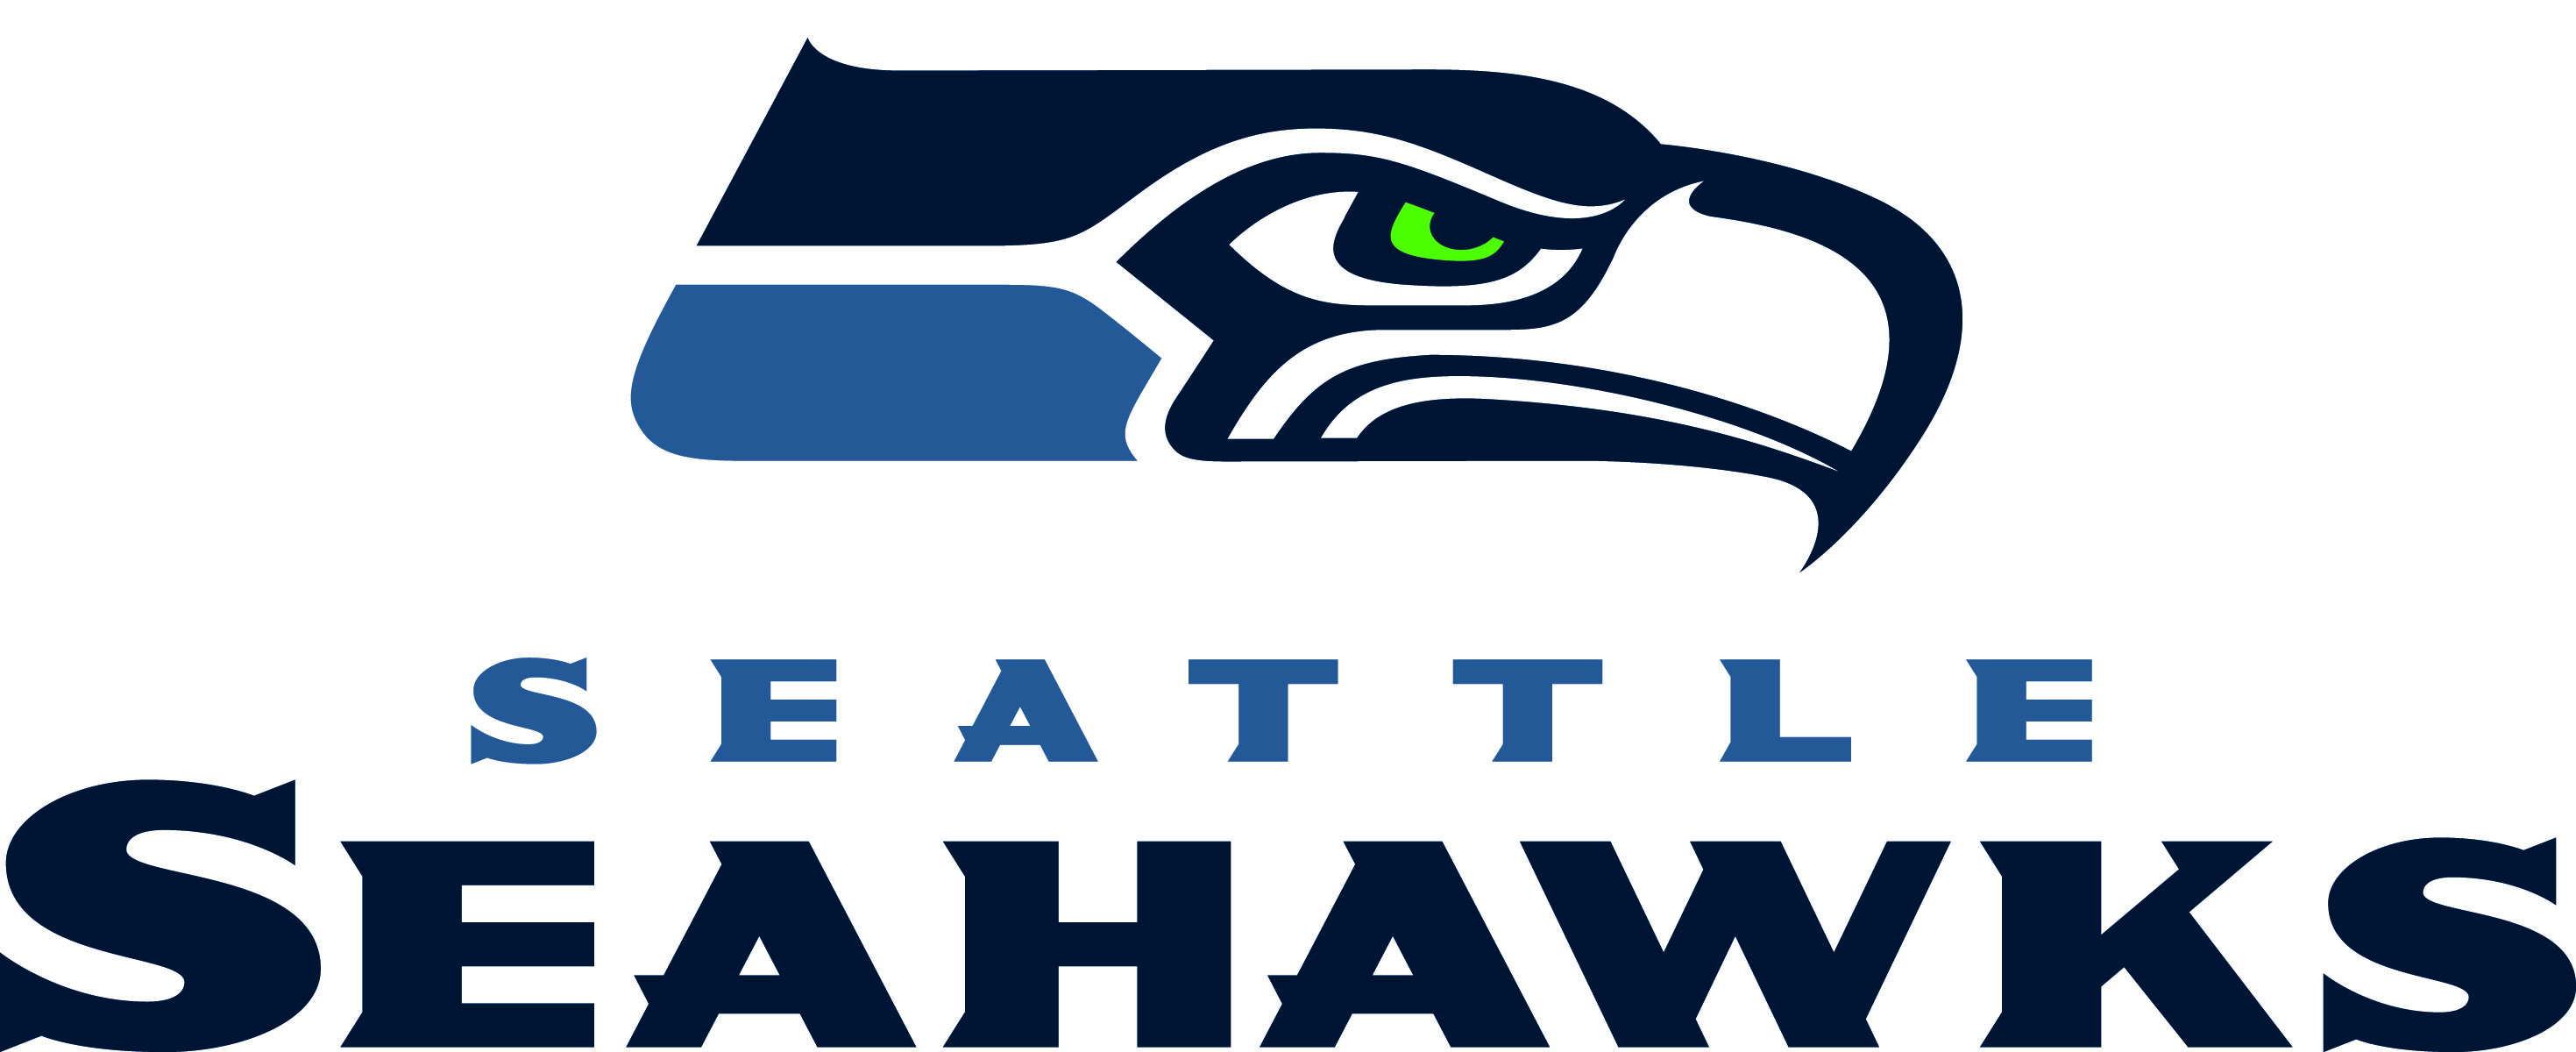 Seattle-Seahawks-Wallpapers-Logo-Seattle-Seahawks-Wallpapers-Logo-15